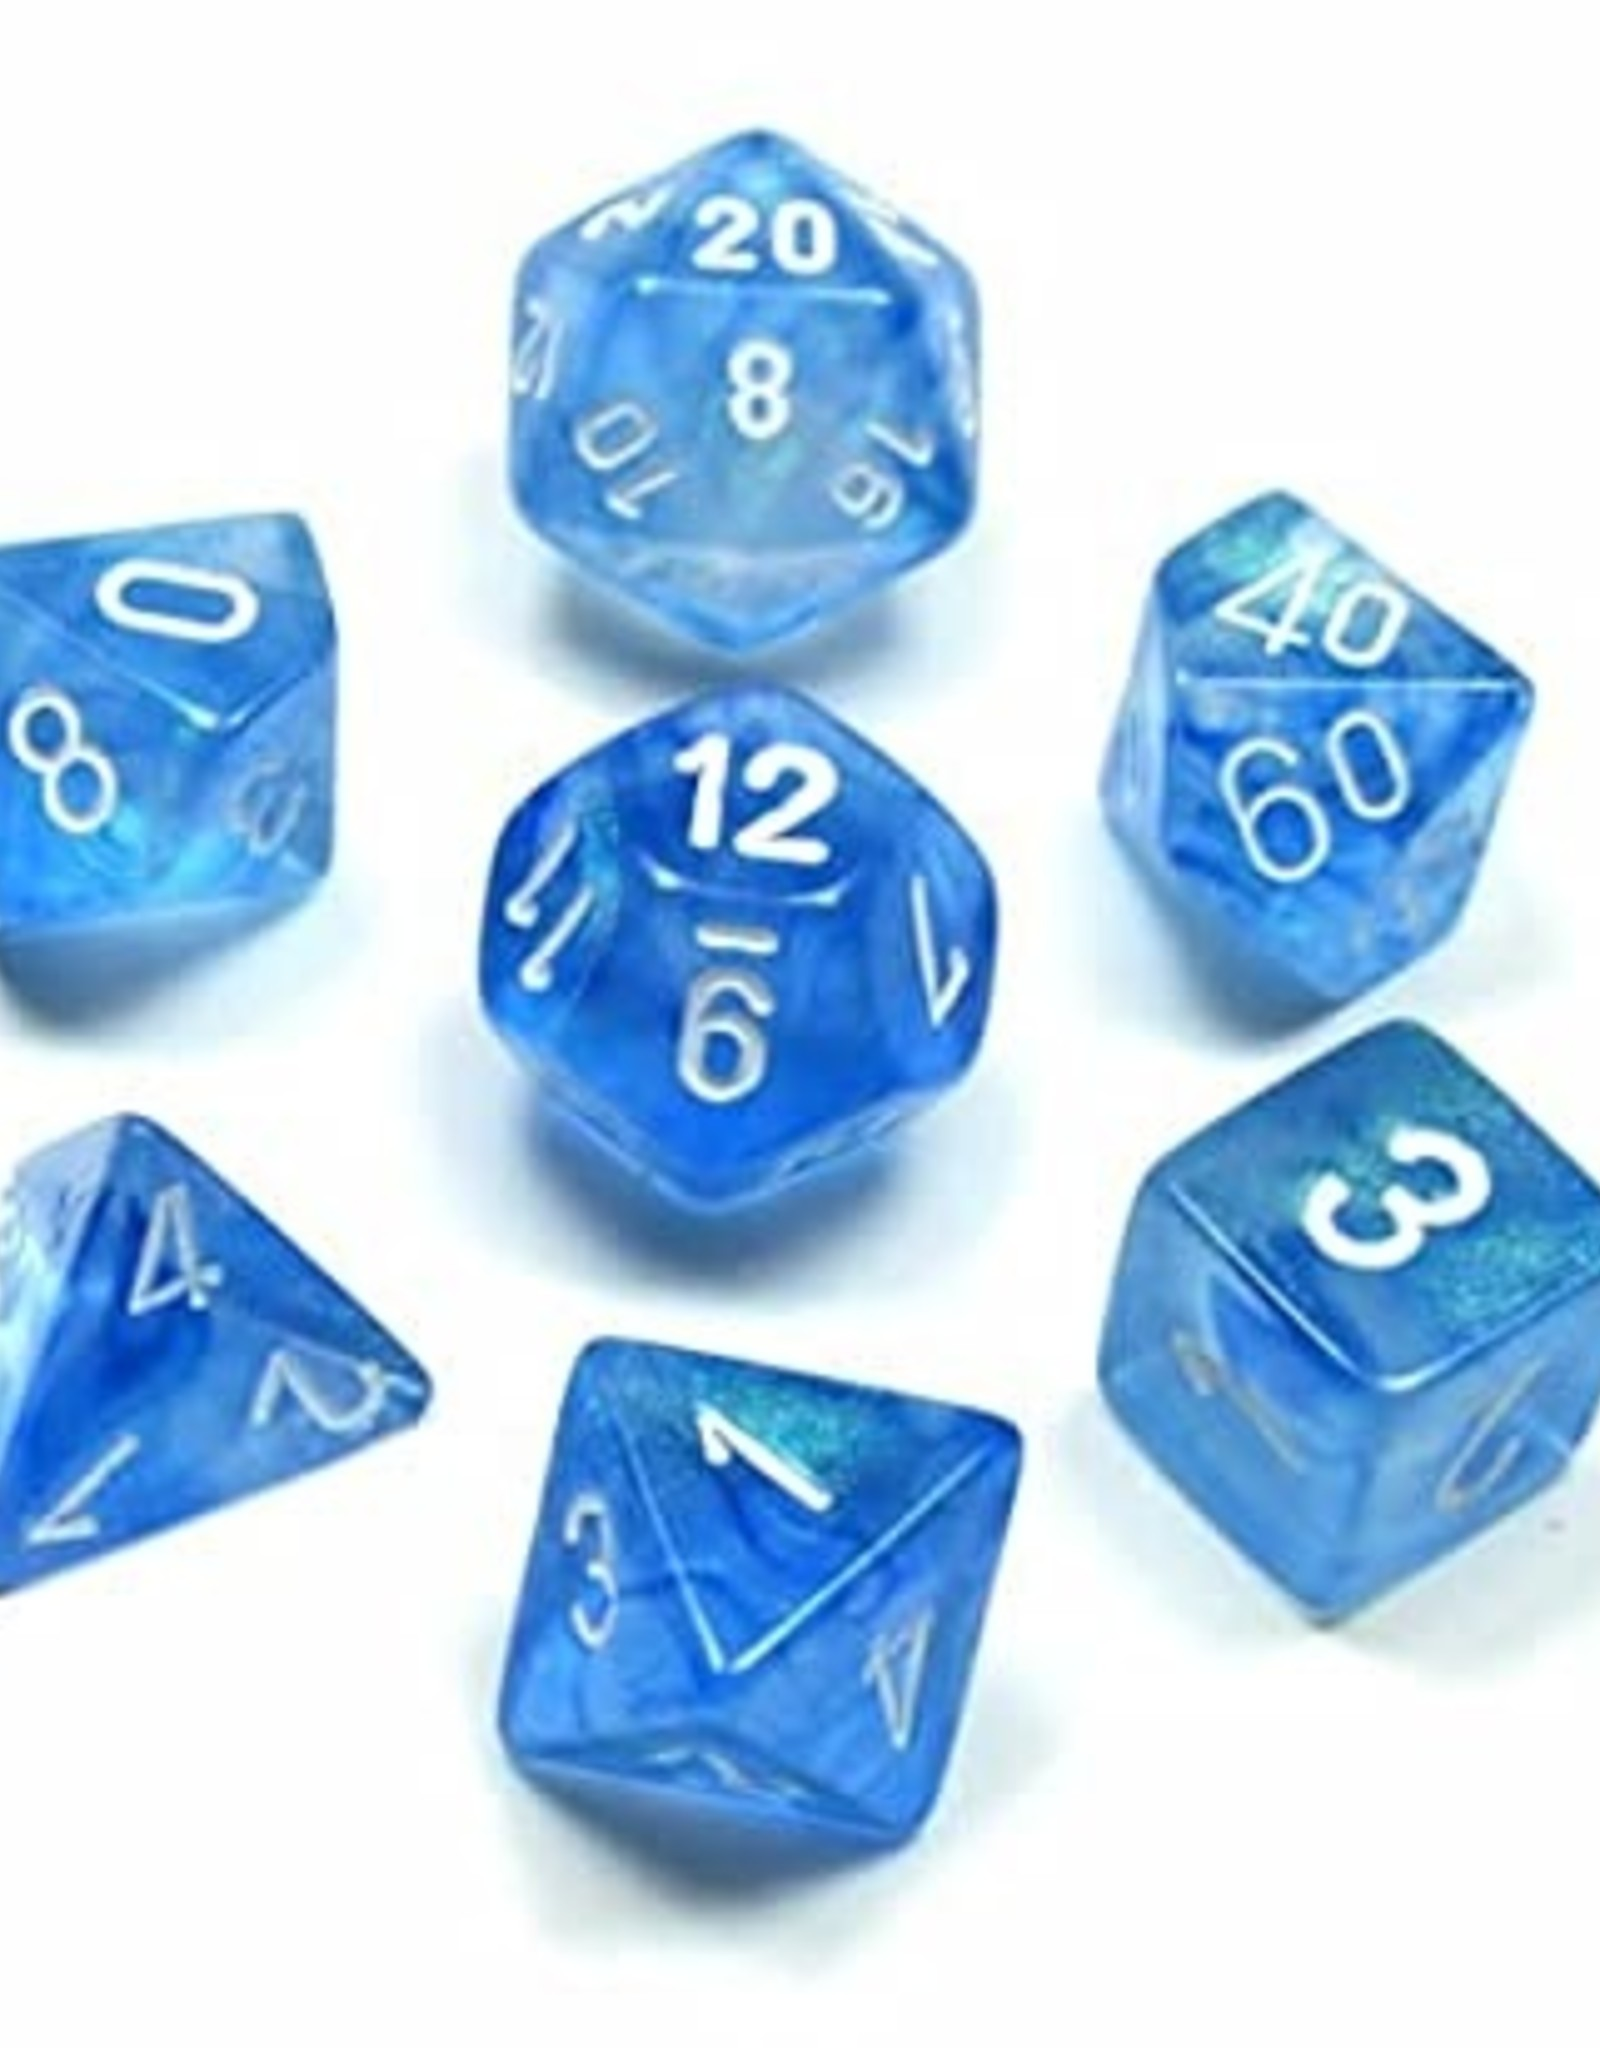 Chessex Chessex 7-Die set Borealis - Sky Blue/White